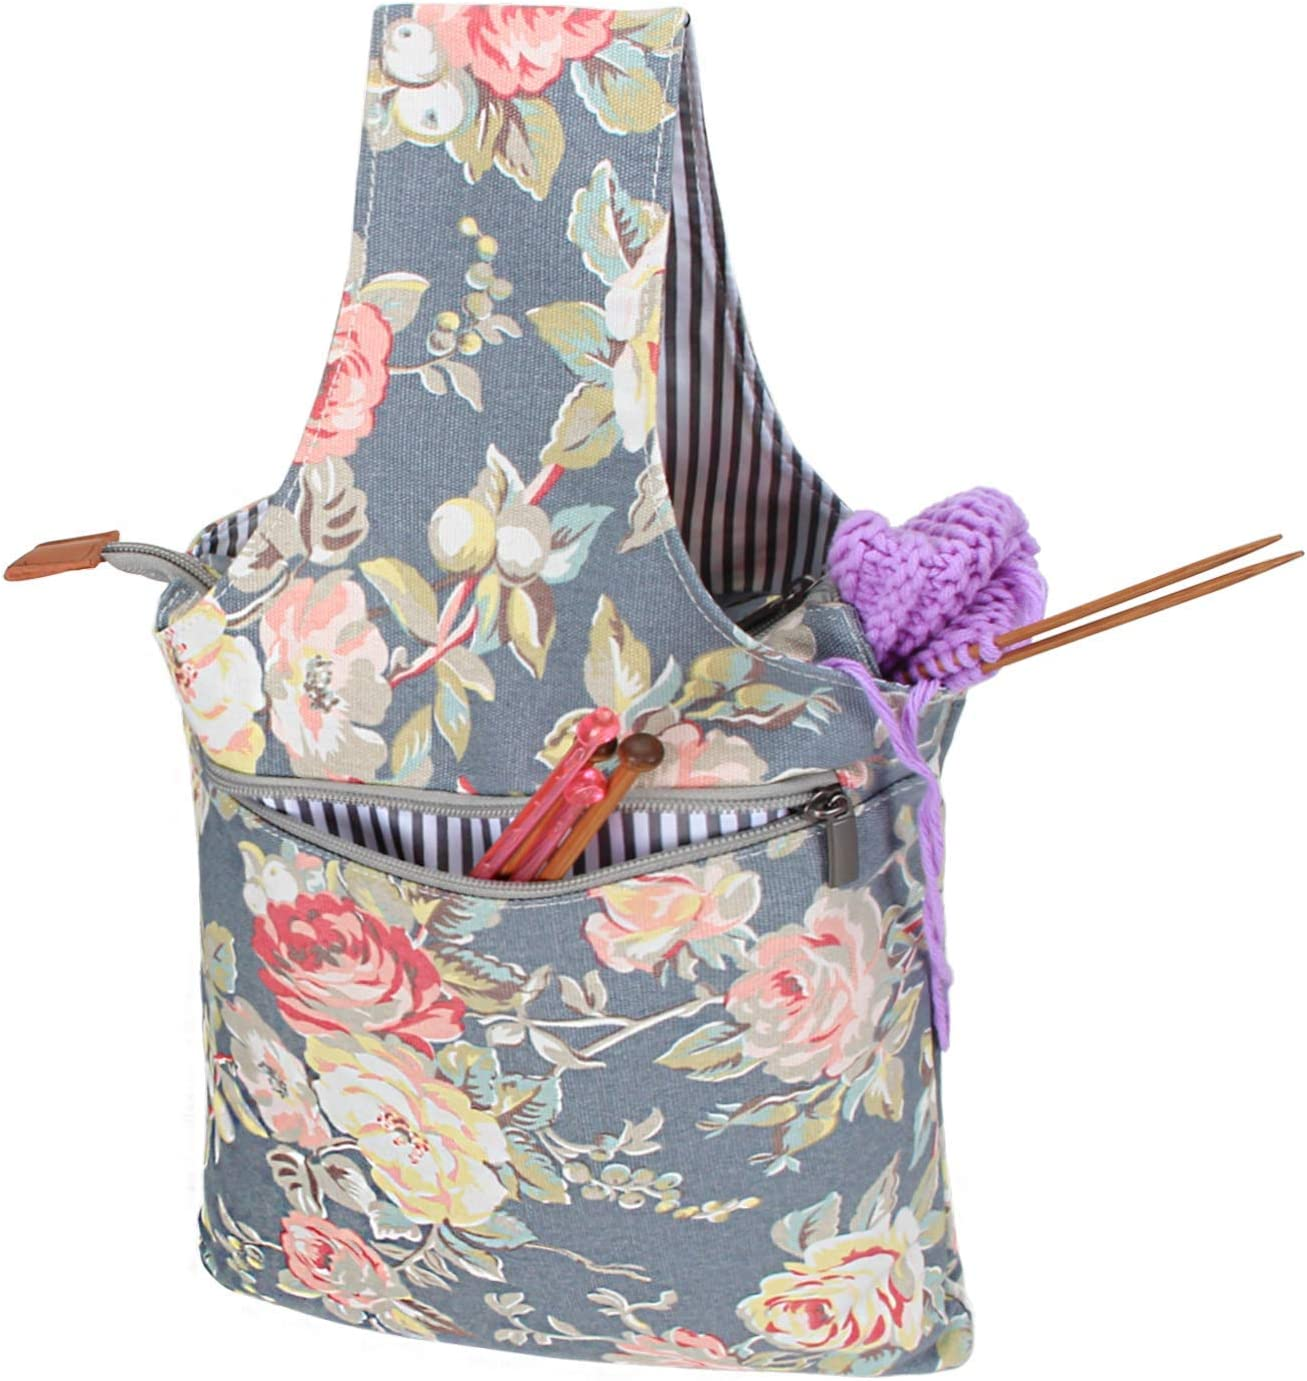 Portable Crocheting Knitting Storage Tote Bag with Feed Hole Sewing Supplies Q